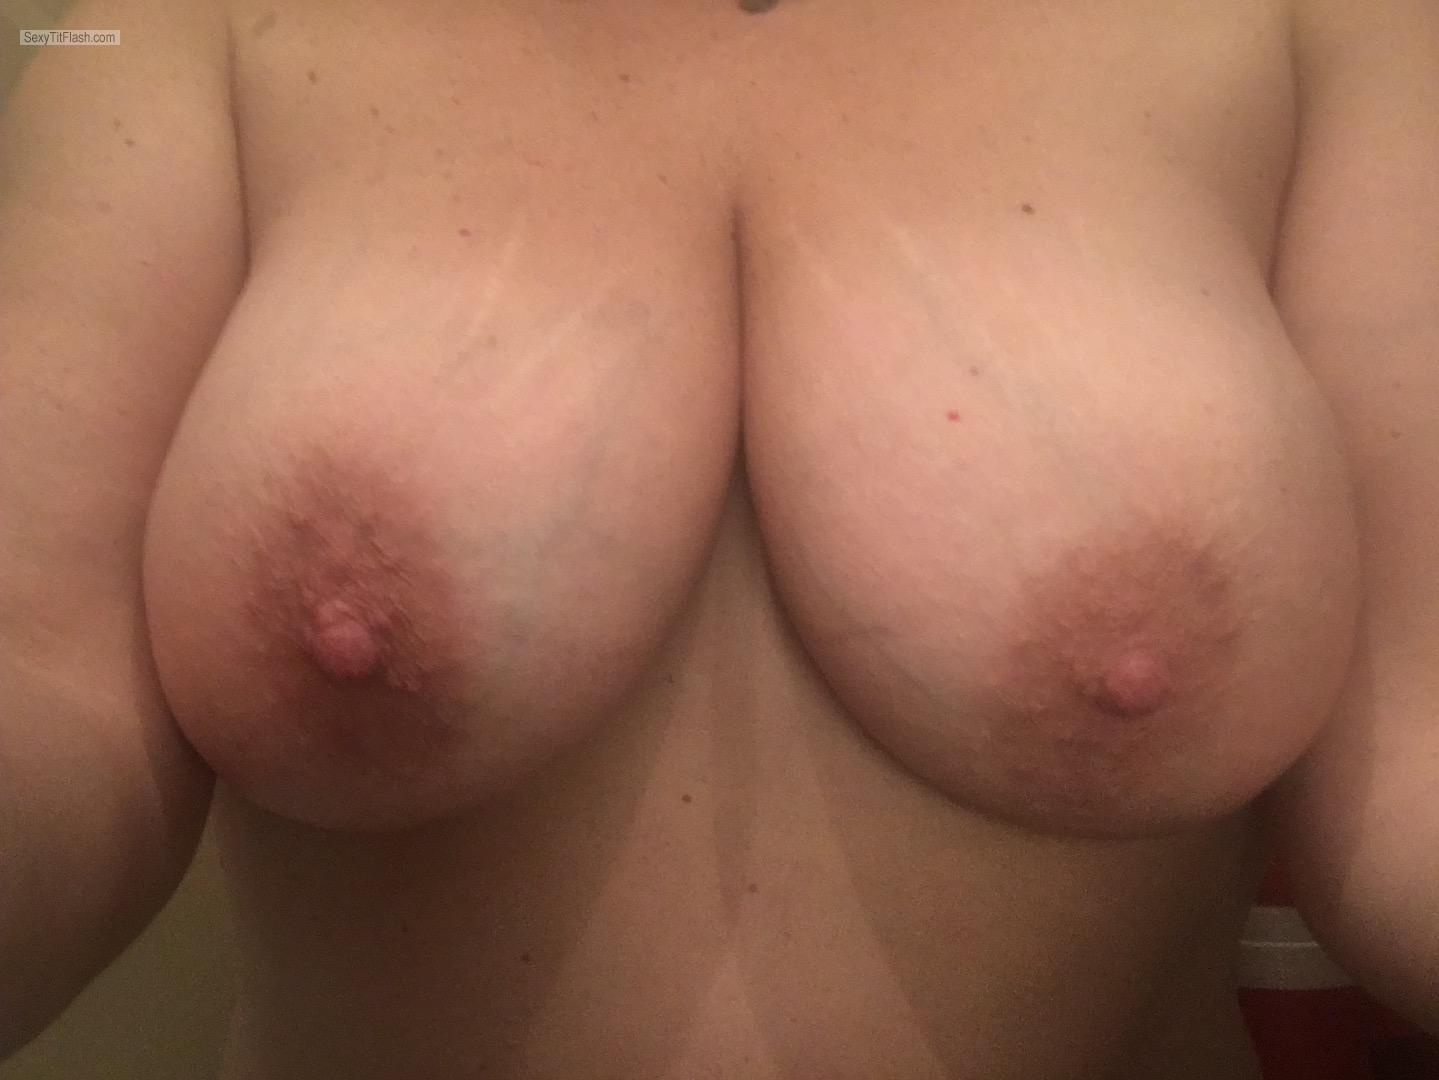 My Big Tits Selfie by Sharon